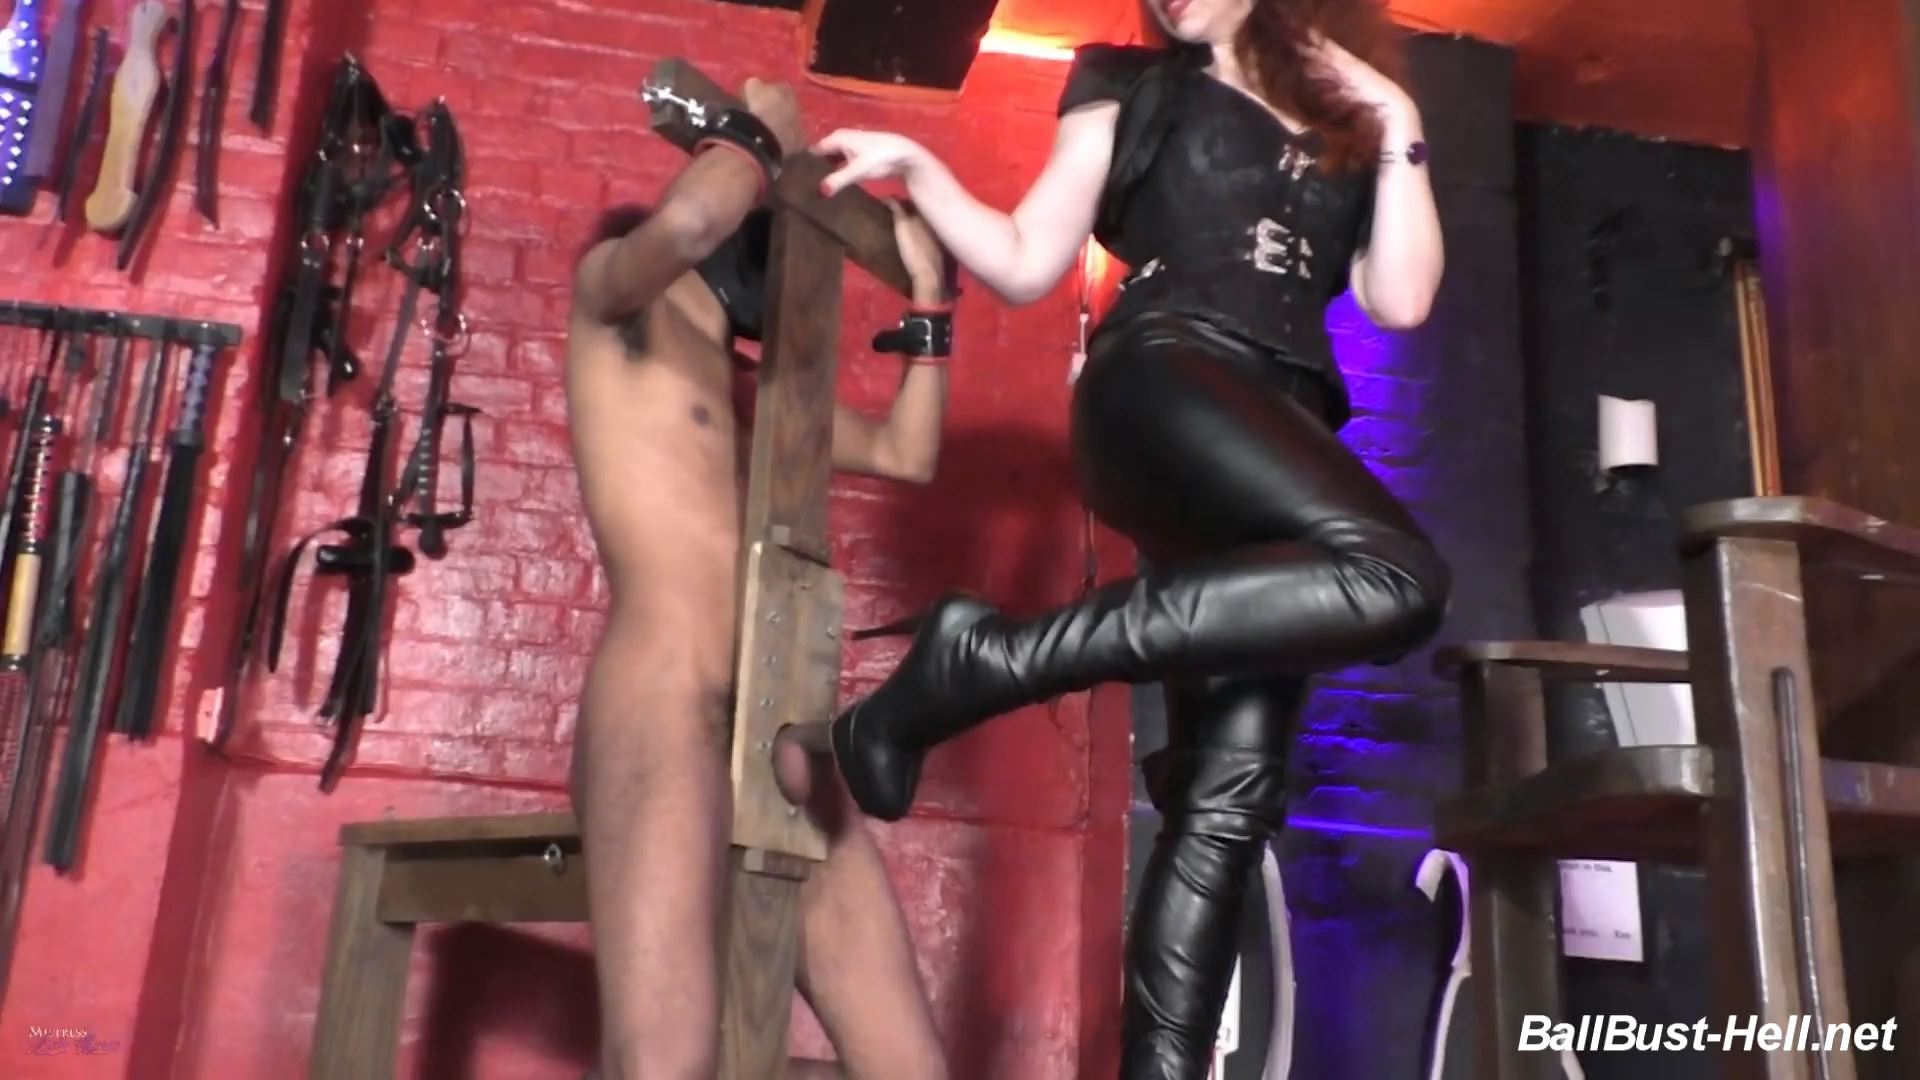 Mistress Lady Renee In Scene: Predicament Balls - MistressLadyRenee - FULL HD/1080p/MP4